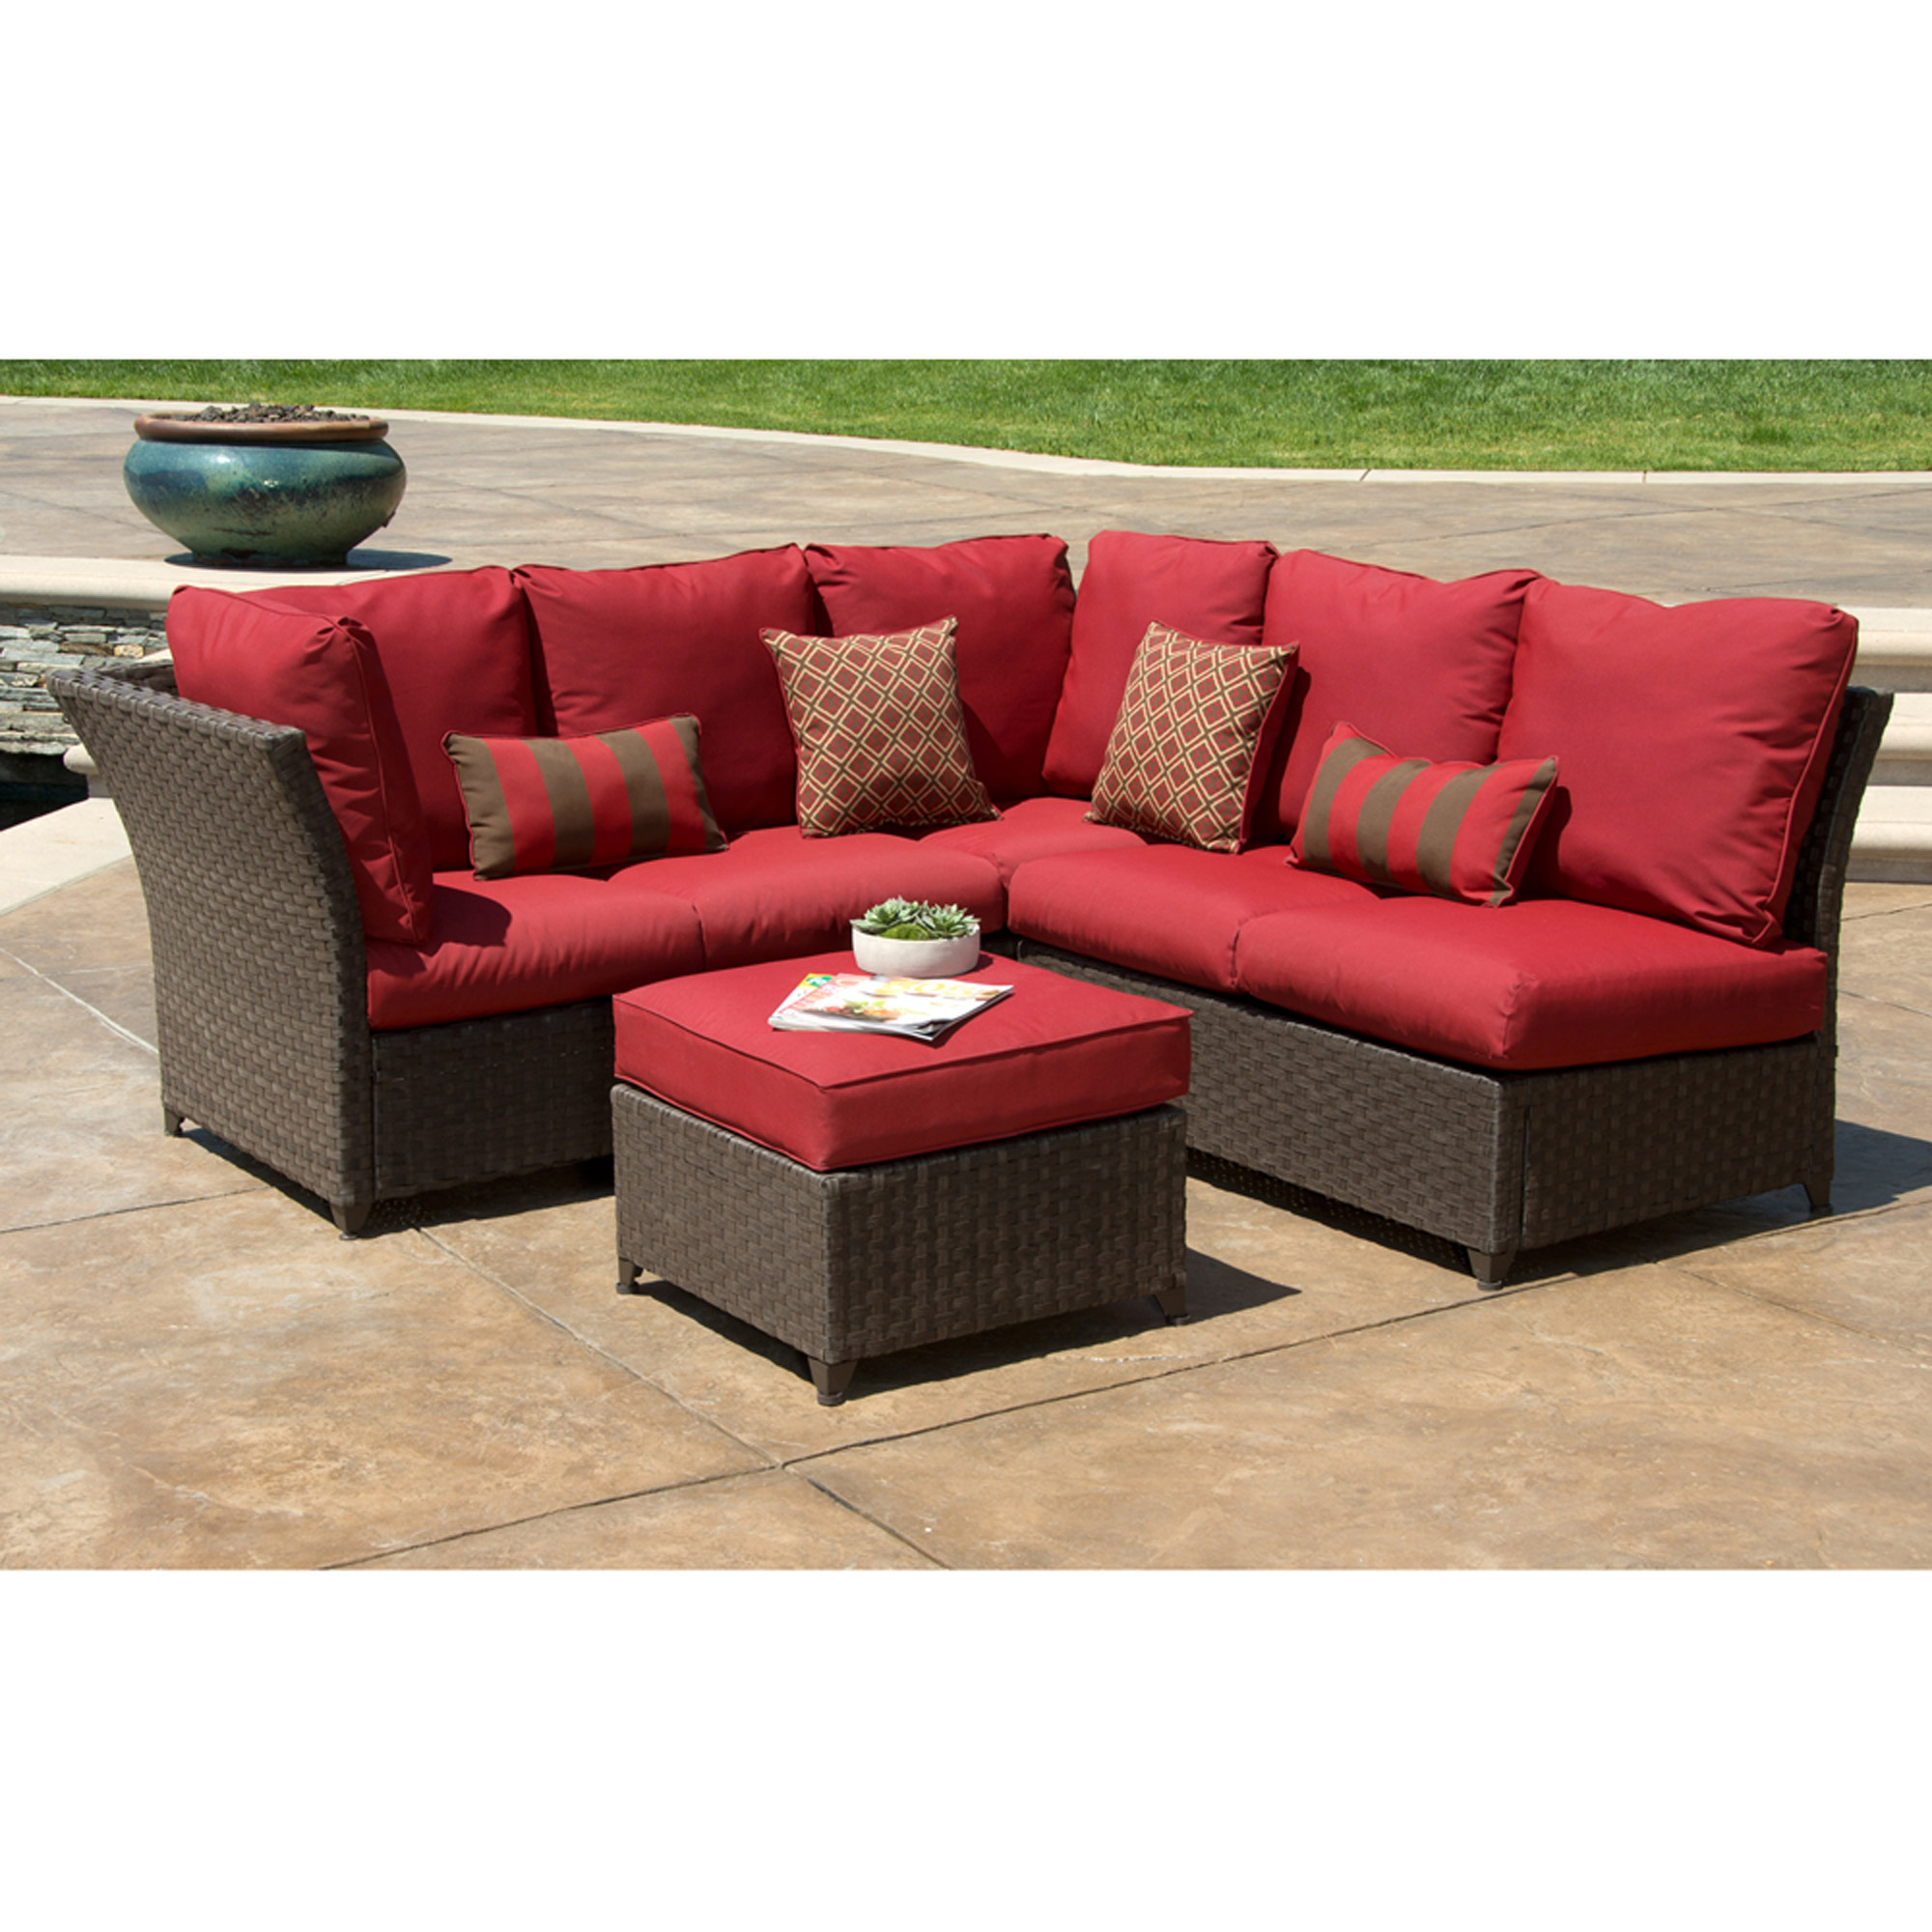 Lovely Better Homes And Gardens Rushreed 3 Piece Outdoor Sectional Sofa Set, Red,  Seats 5   Walmart.com